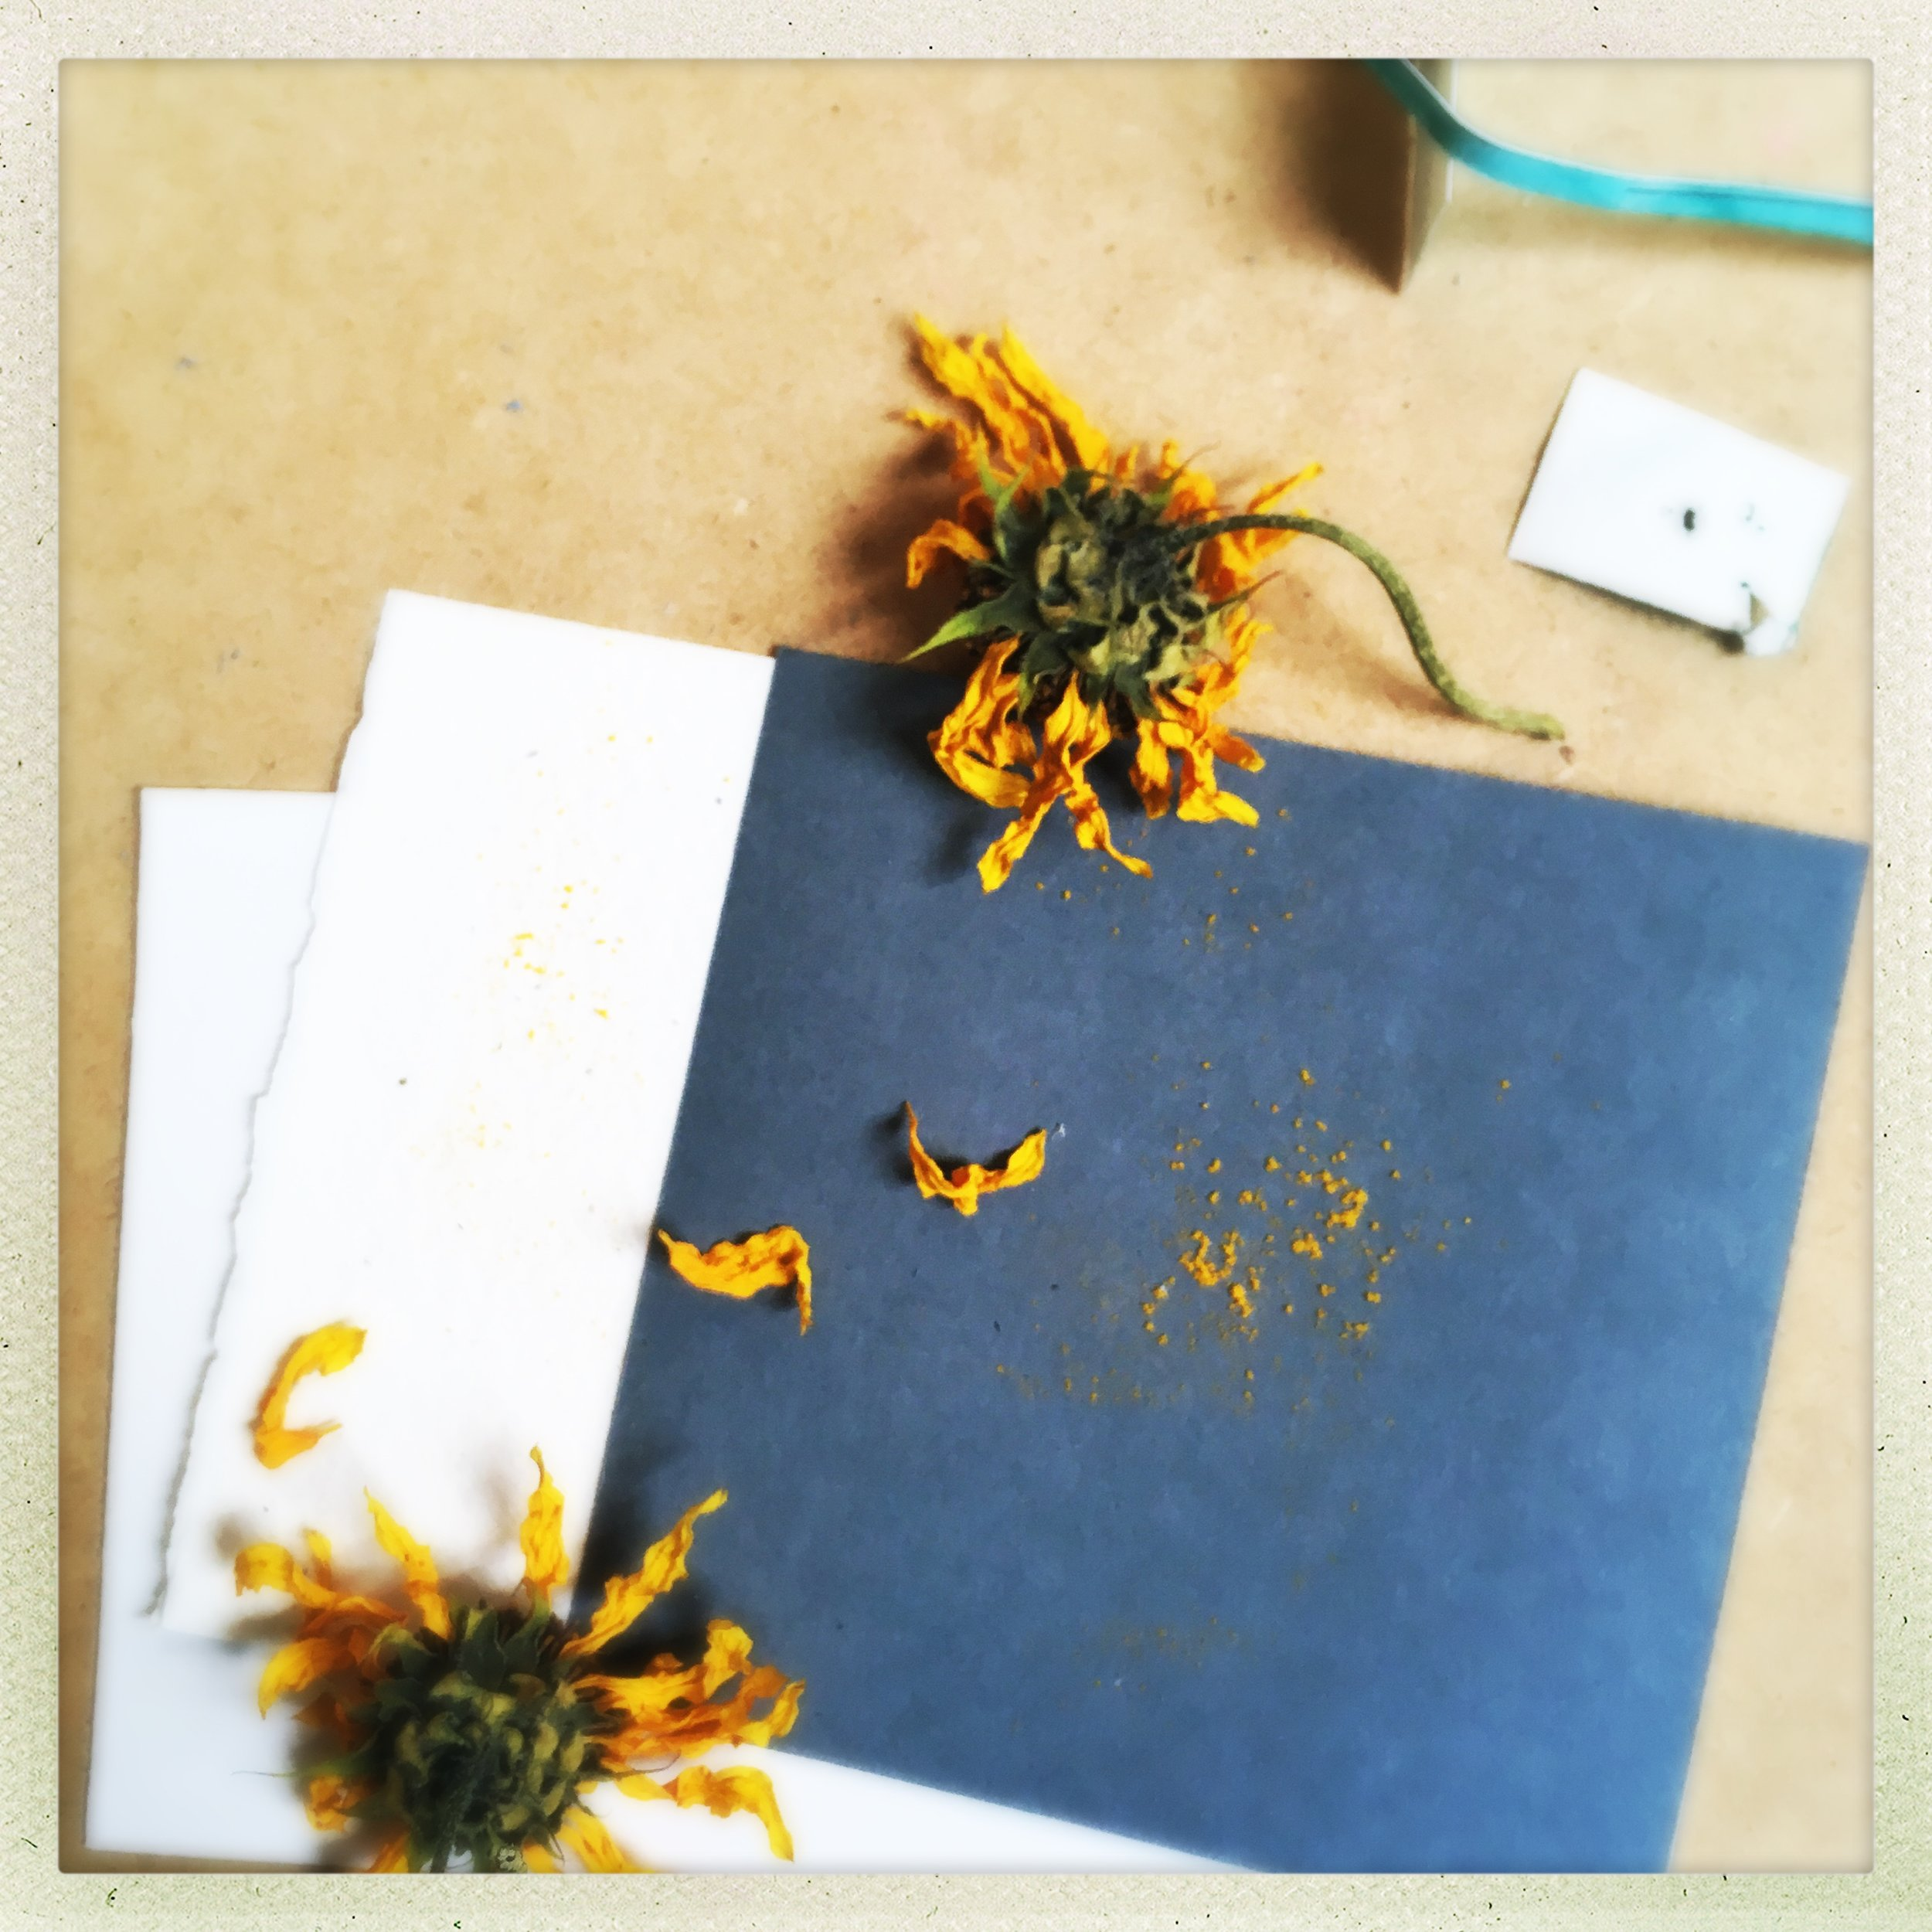 what is sacred, what deserves attention? pollen, discarded paper samples, sunflowers that lived only briefly indoors.